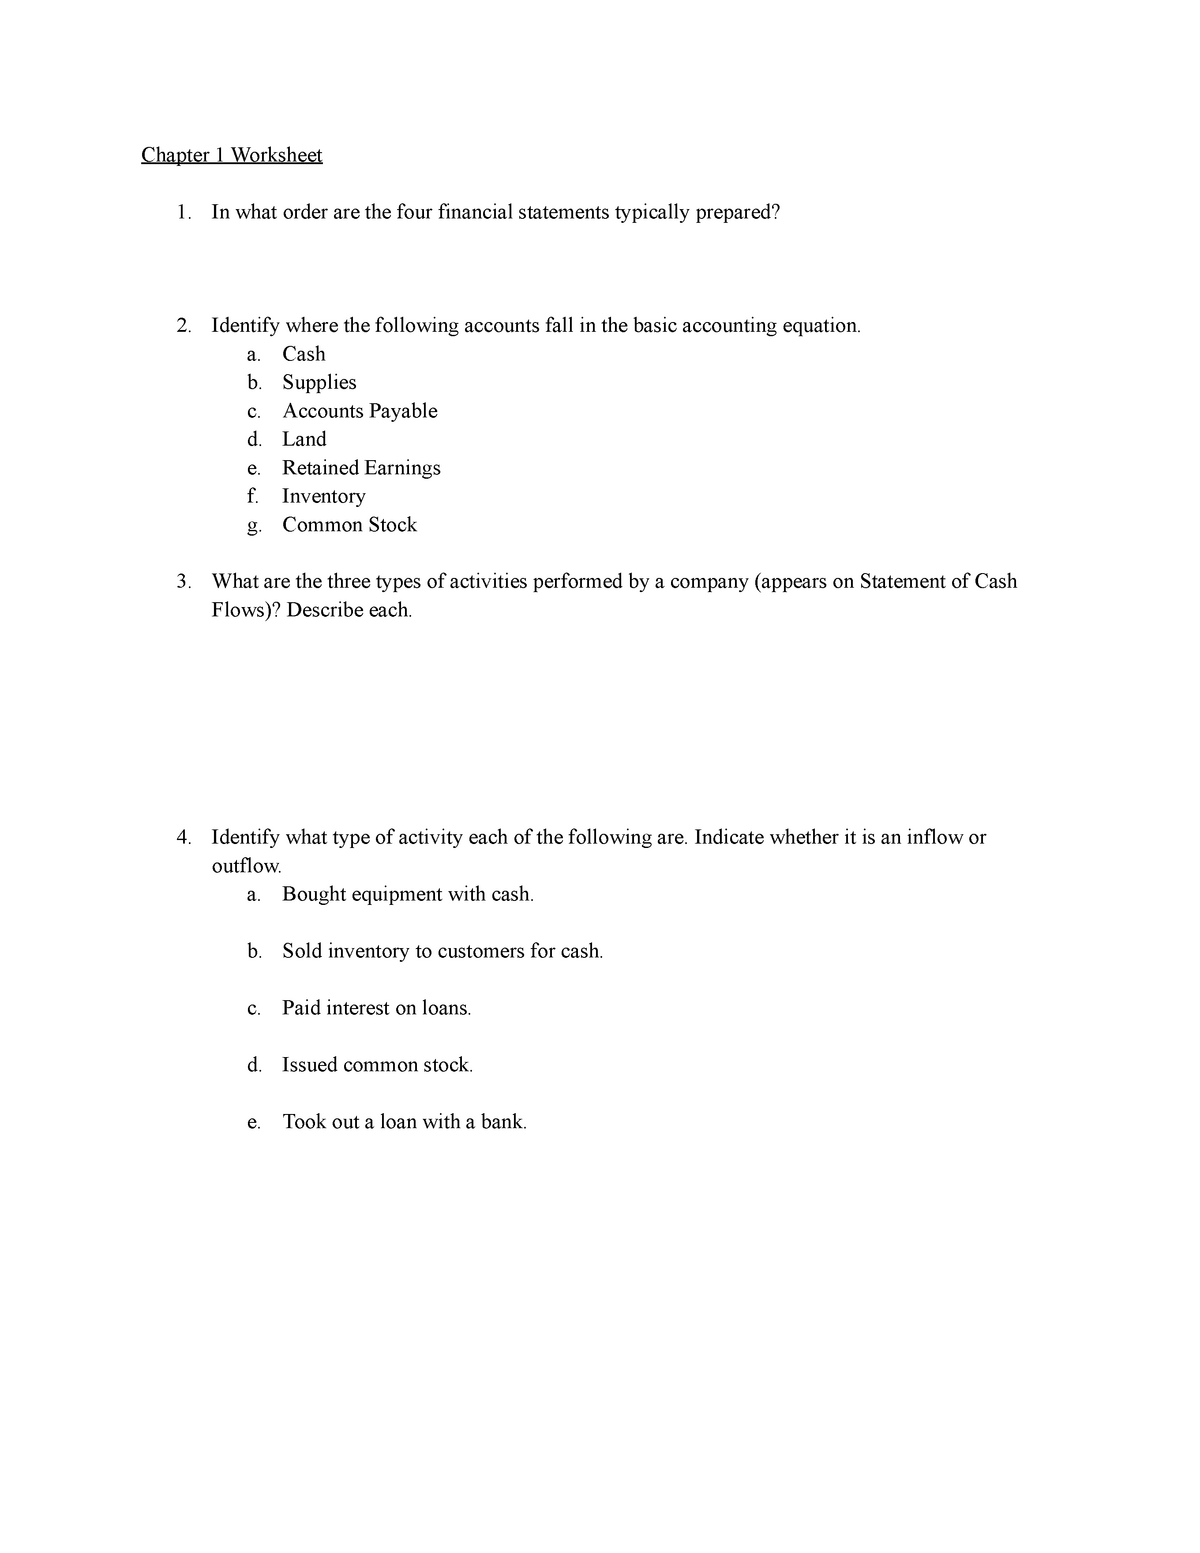 Chapter 1 Worksheet - PEER Assisted Learning Assignment ...